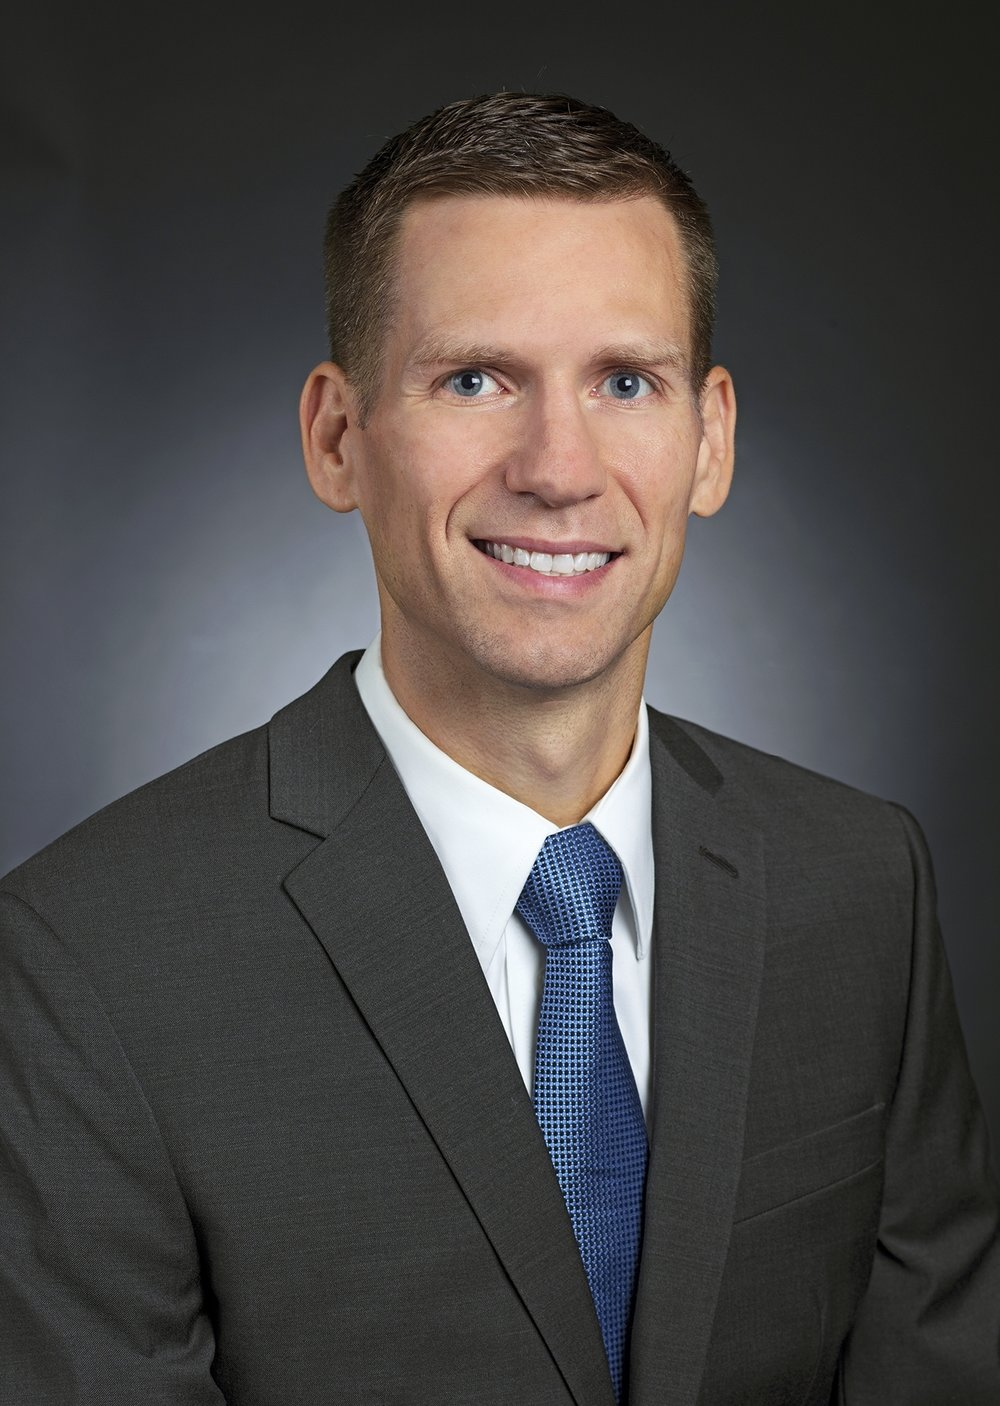 Dr. Bret Lehman - Dr. Bret Lehman attended The Ohio State University College of Optometry, graduating with a Doctorate of Optometry and Master's in Vision Science in 2009. Following graduation, he completed his residency through Northeastern State University Oklahoma College of Optometry. Before joining Eye Specialists of Indiana, Dr. Lehman served seven years in the United State Army as an Army Optometrist and he continues his military service through the Air National Guard. Dr. Lehman is certified by the National Board of Examiners in Optometry and a member of the American Optometric Association and an American Academy of Optometry fellow.